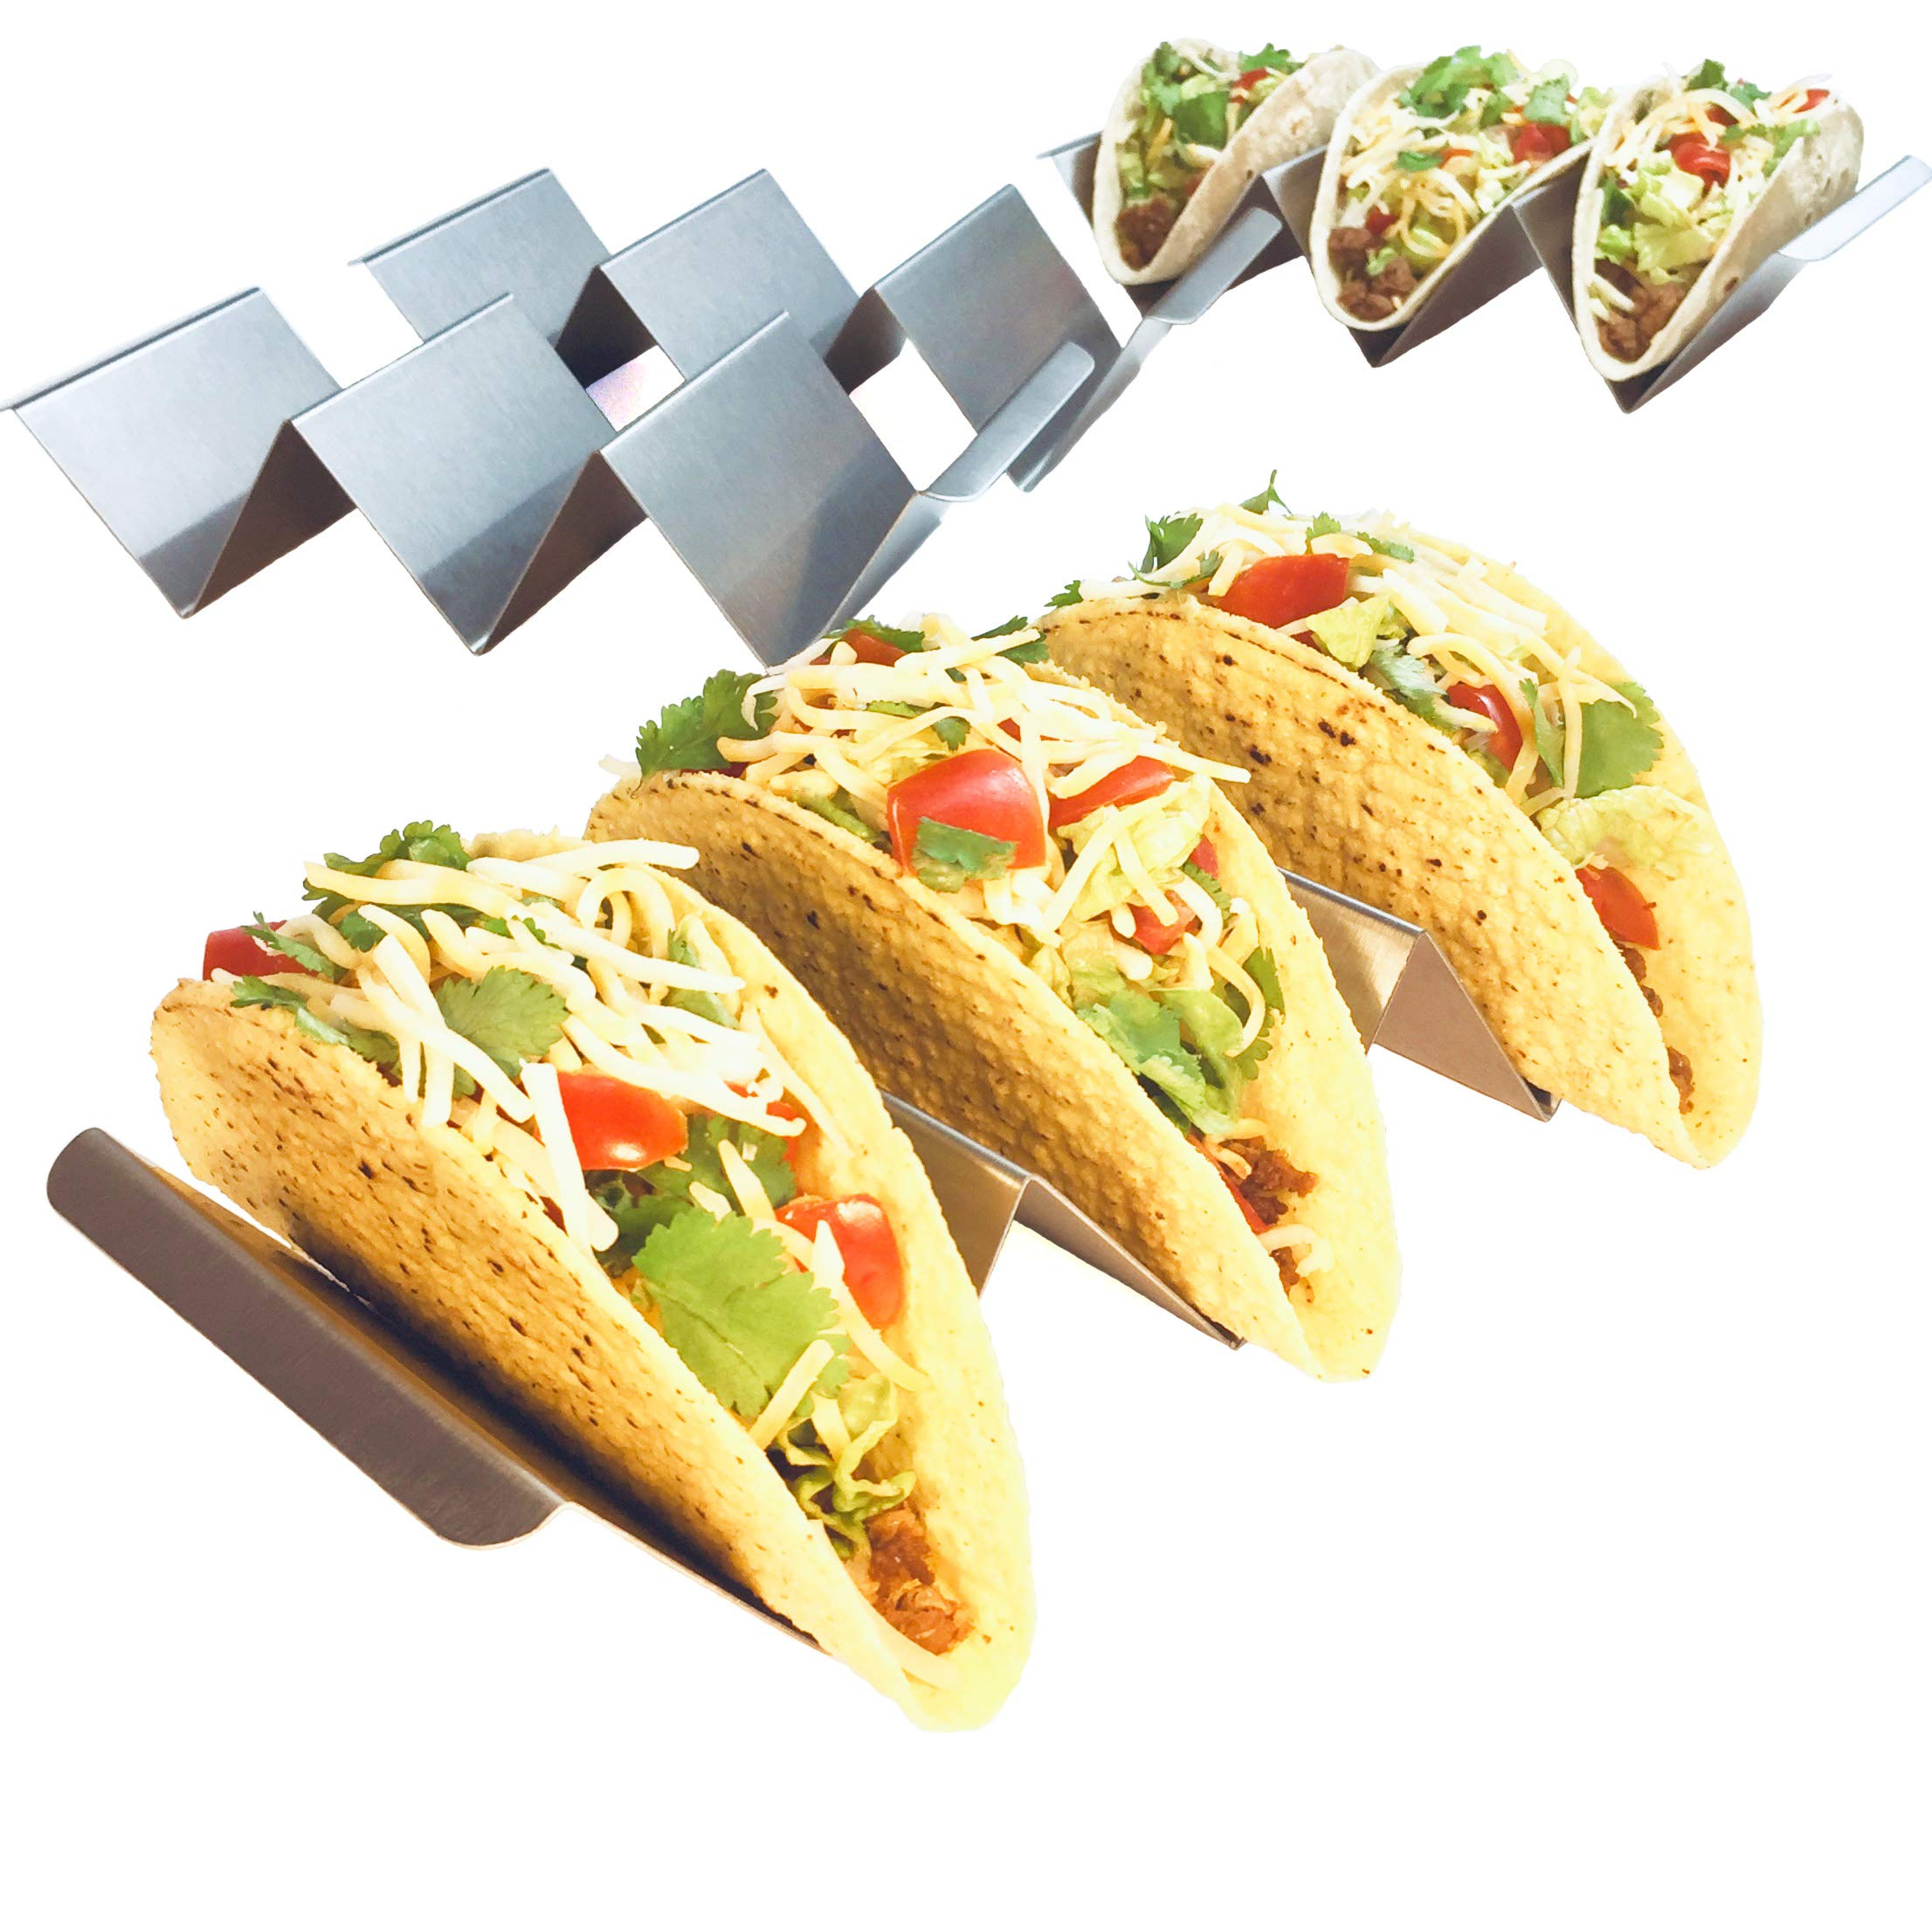 4 Pack - Jumbo Stainless Steel Taco Holder Stand with Handles | Enhanced Durability Restaurant Grade Stainless Steel for FULLER Sized Tacos | Metal Taco Rack Oven, Grill and Dishwasher Safe Serveware